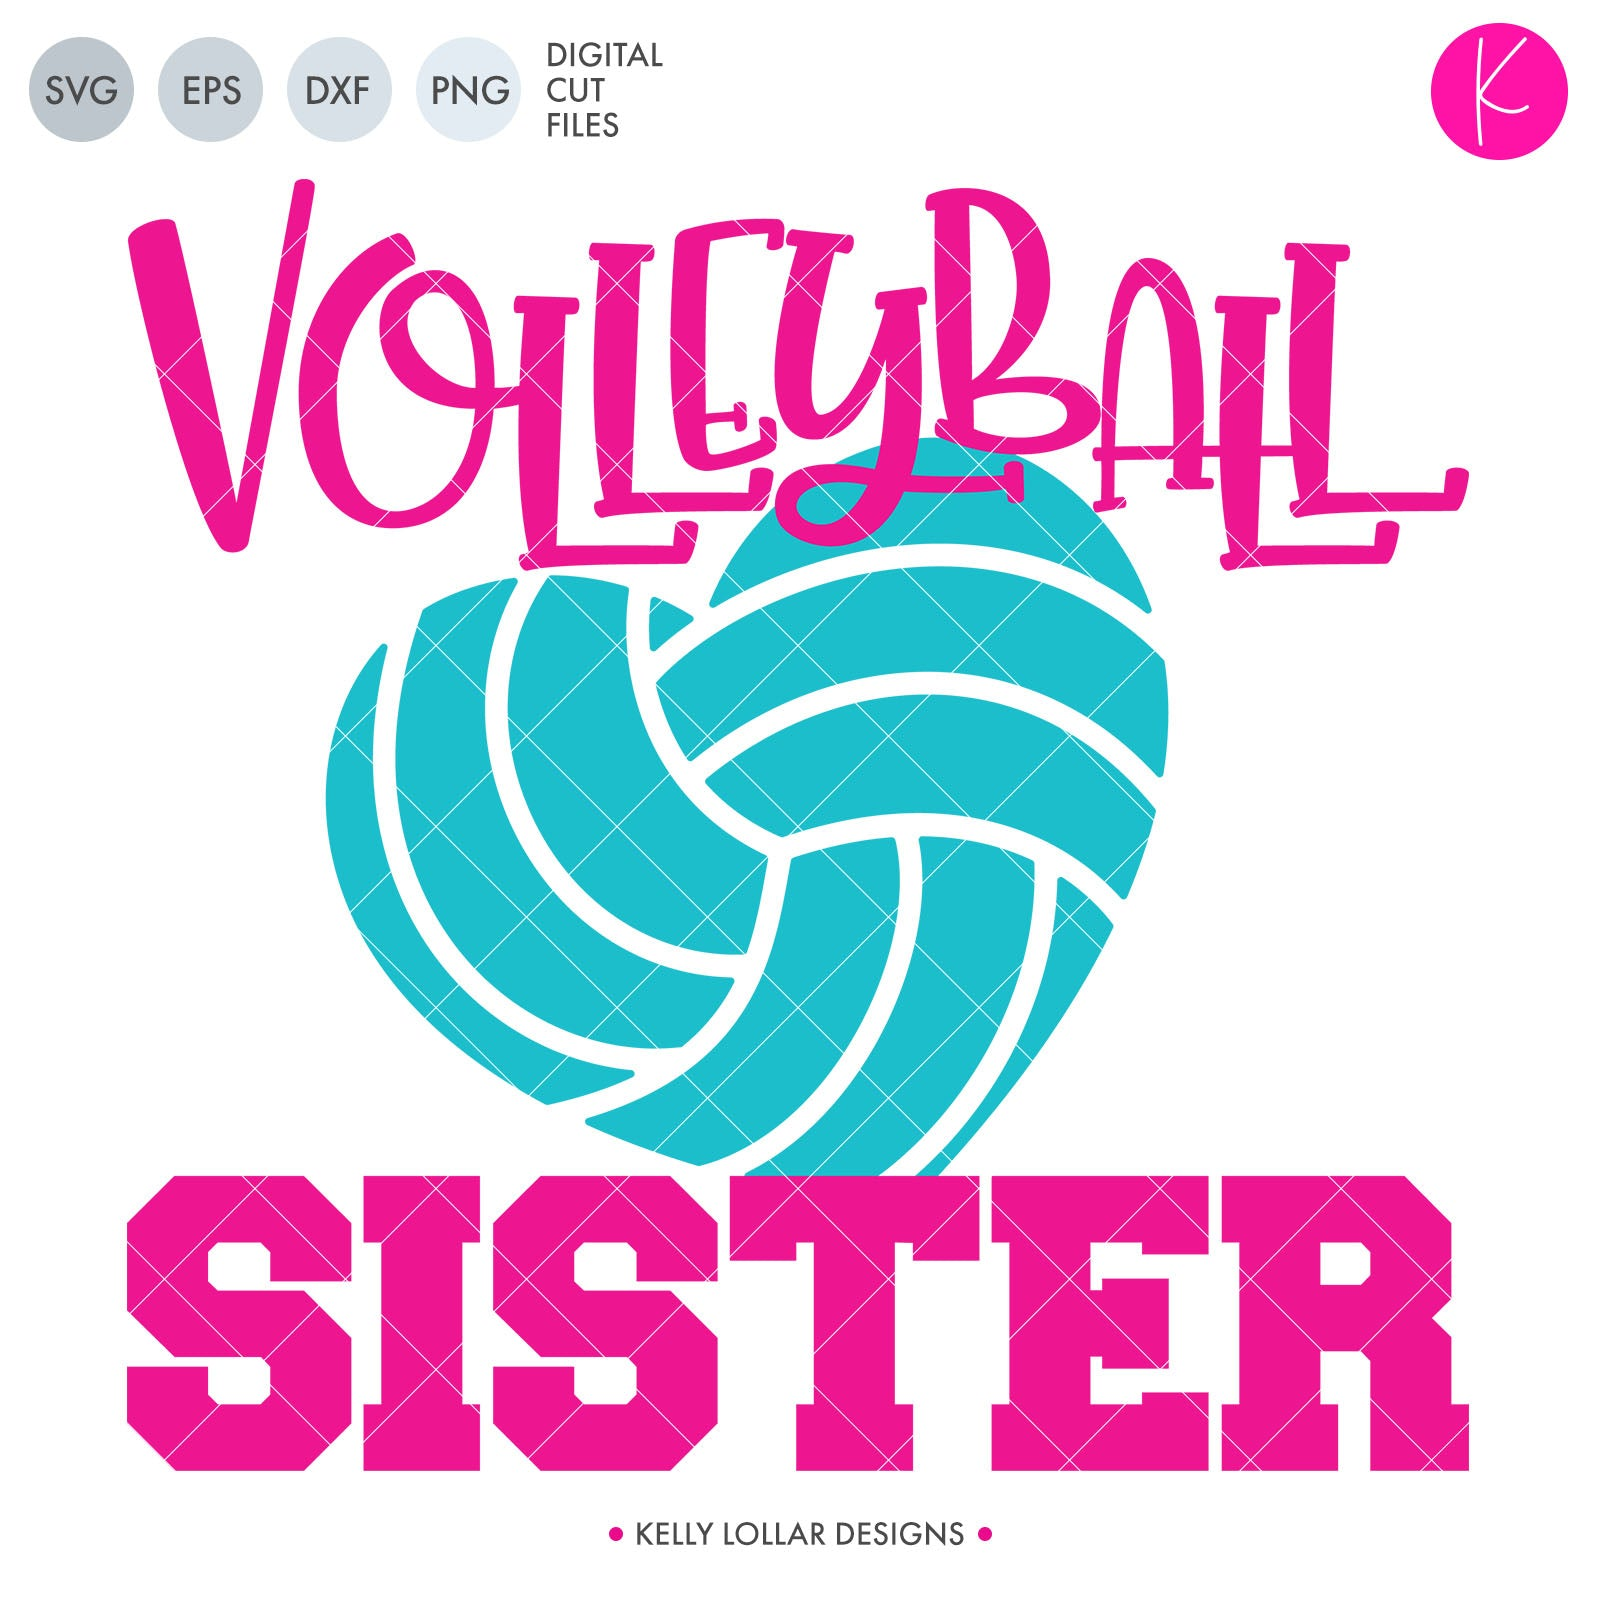 Volleyball Sister SVG Cut File Volleyball Sister Quote with Heart Shaped Volleyball | SVG DXF PNG Cut Files 1 file for each format each piece welded separately to save space while cutting volleyball heart can be